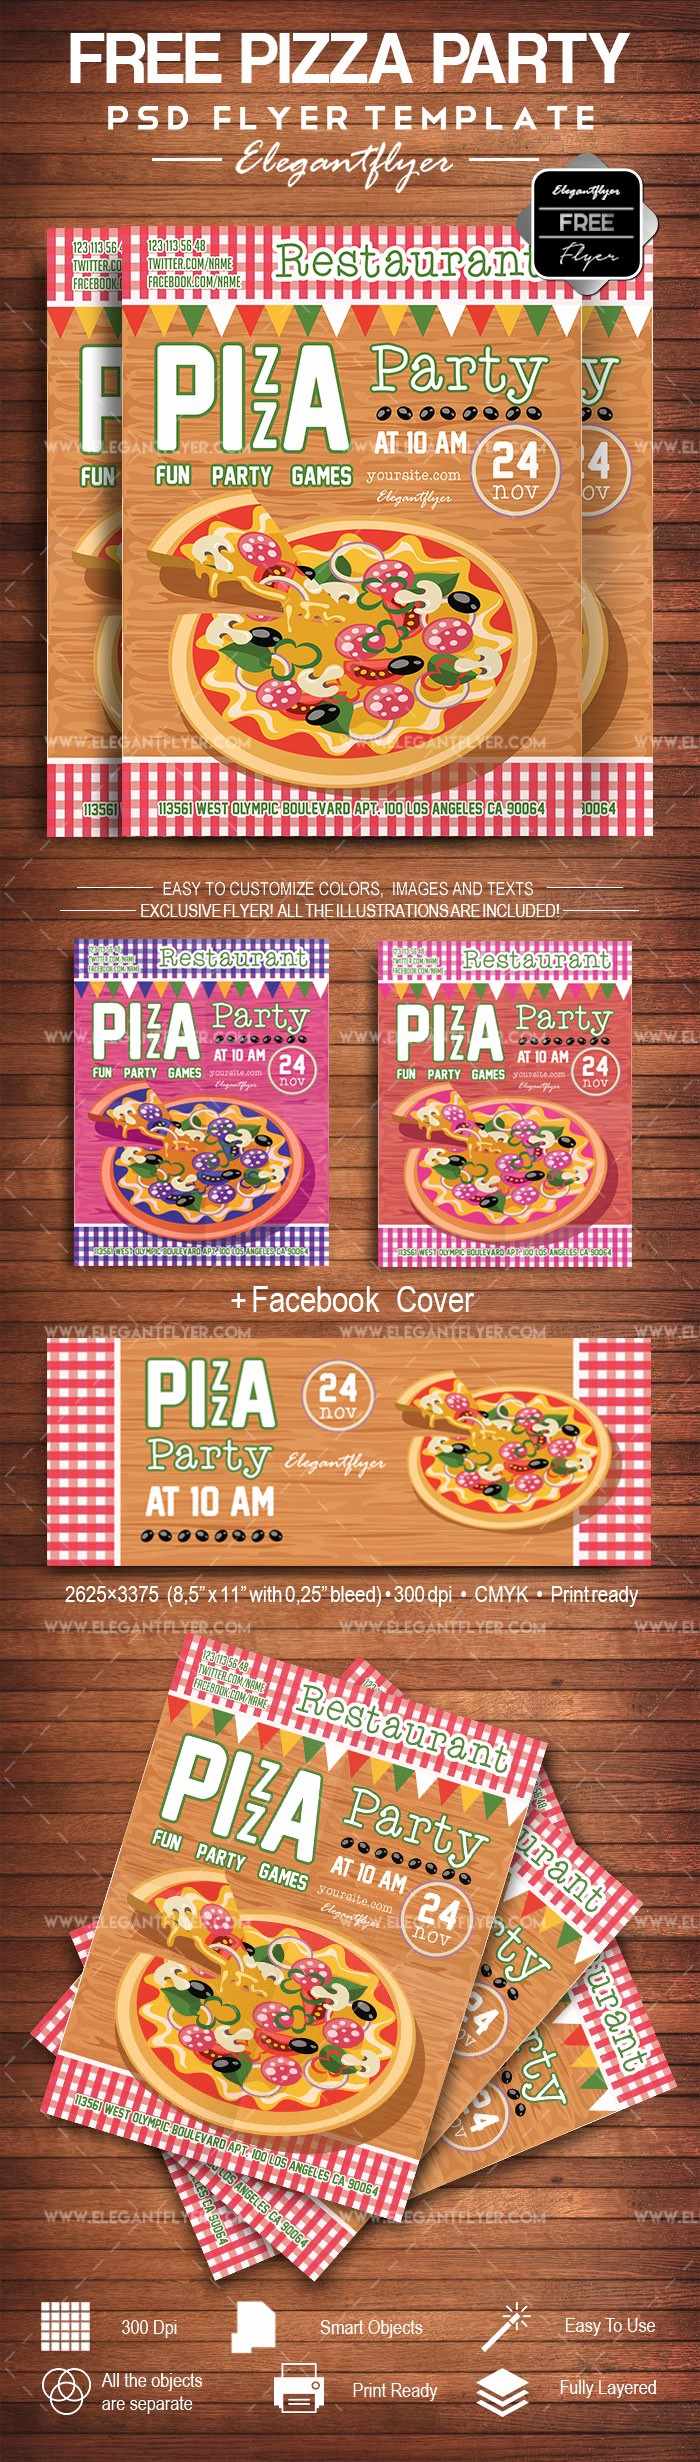 Pizza Party Flyer Template Free Lovely Pizza Party Free Flyer Psd Template – by Elegantflyer